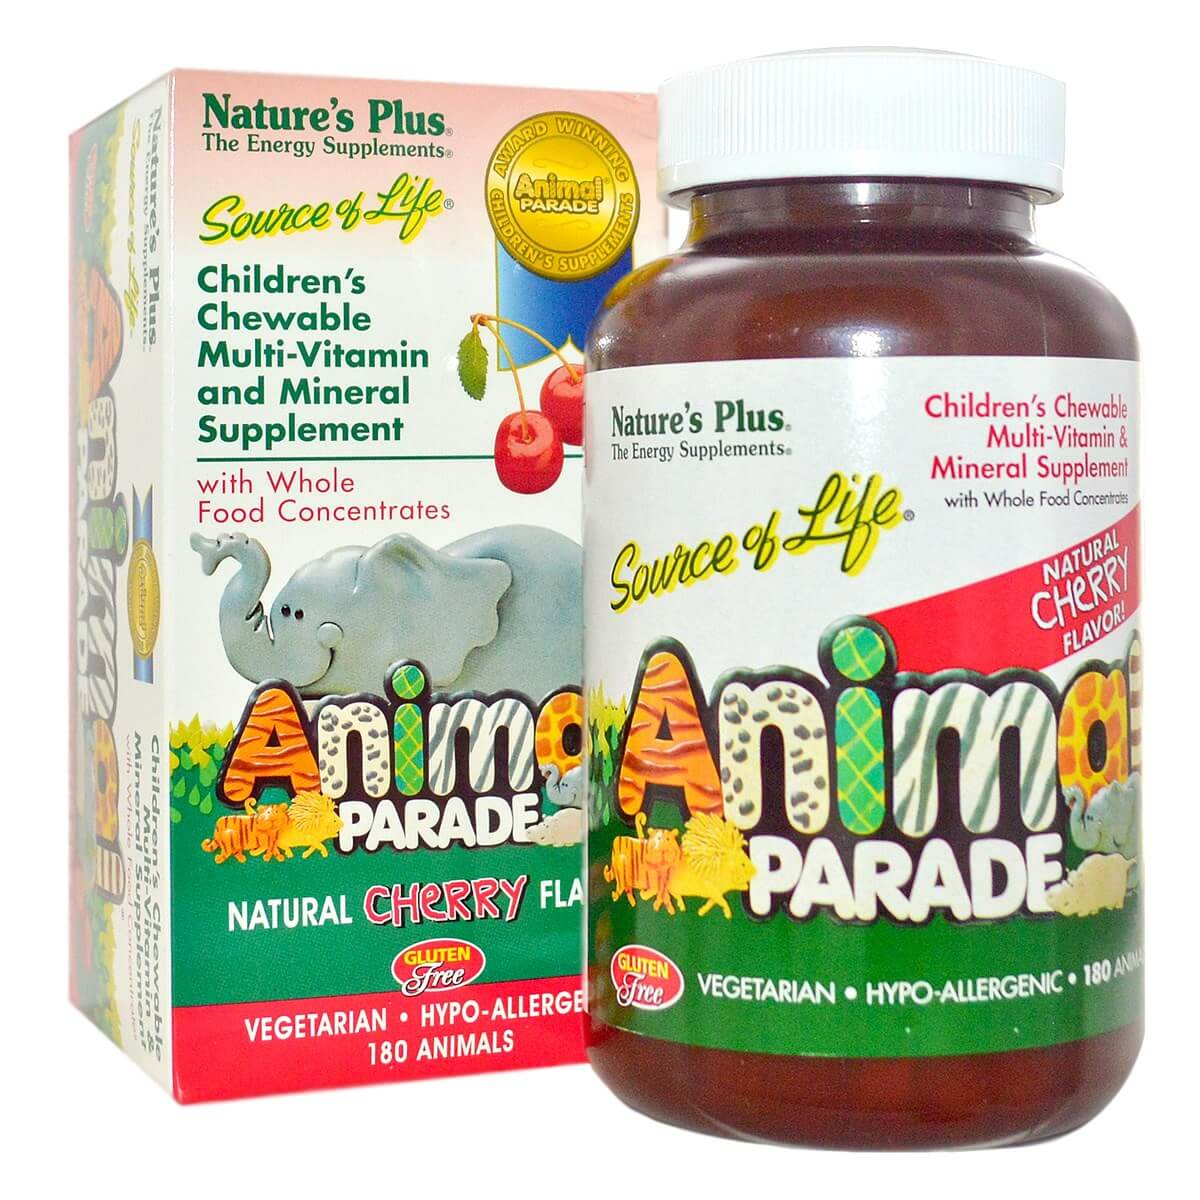 Natures Plus Source of Life Animal Parade - Cherry Flavor Chewables